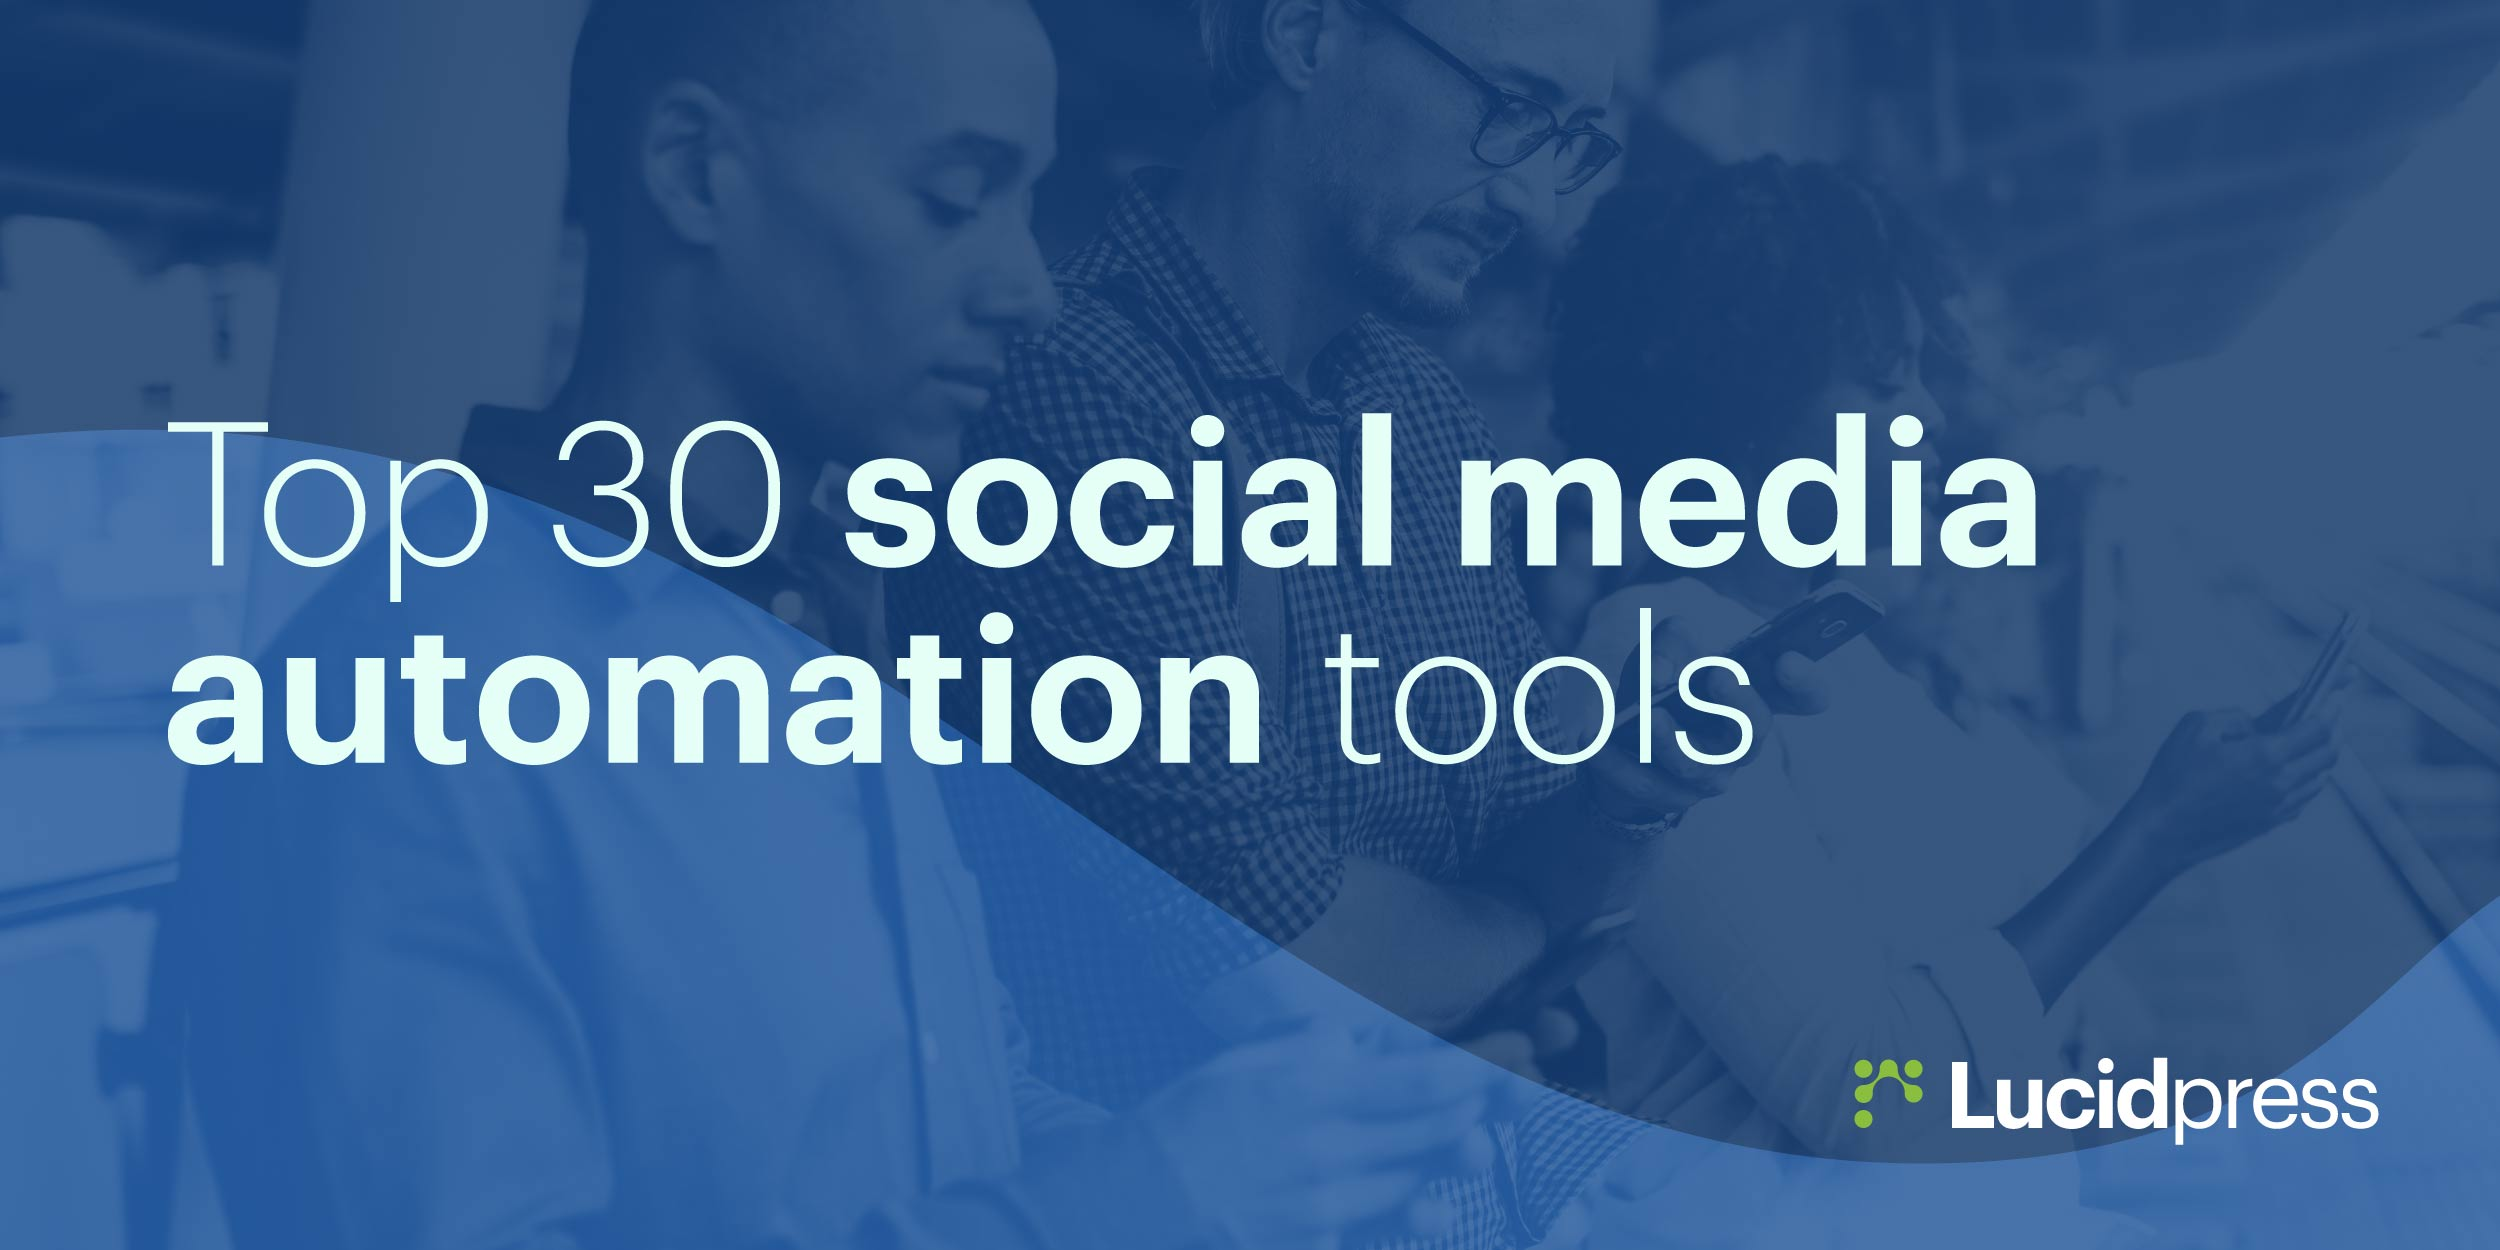 The Top 30 Social Media Automation Tools Lucidpress